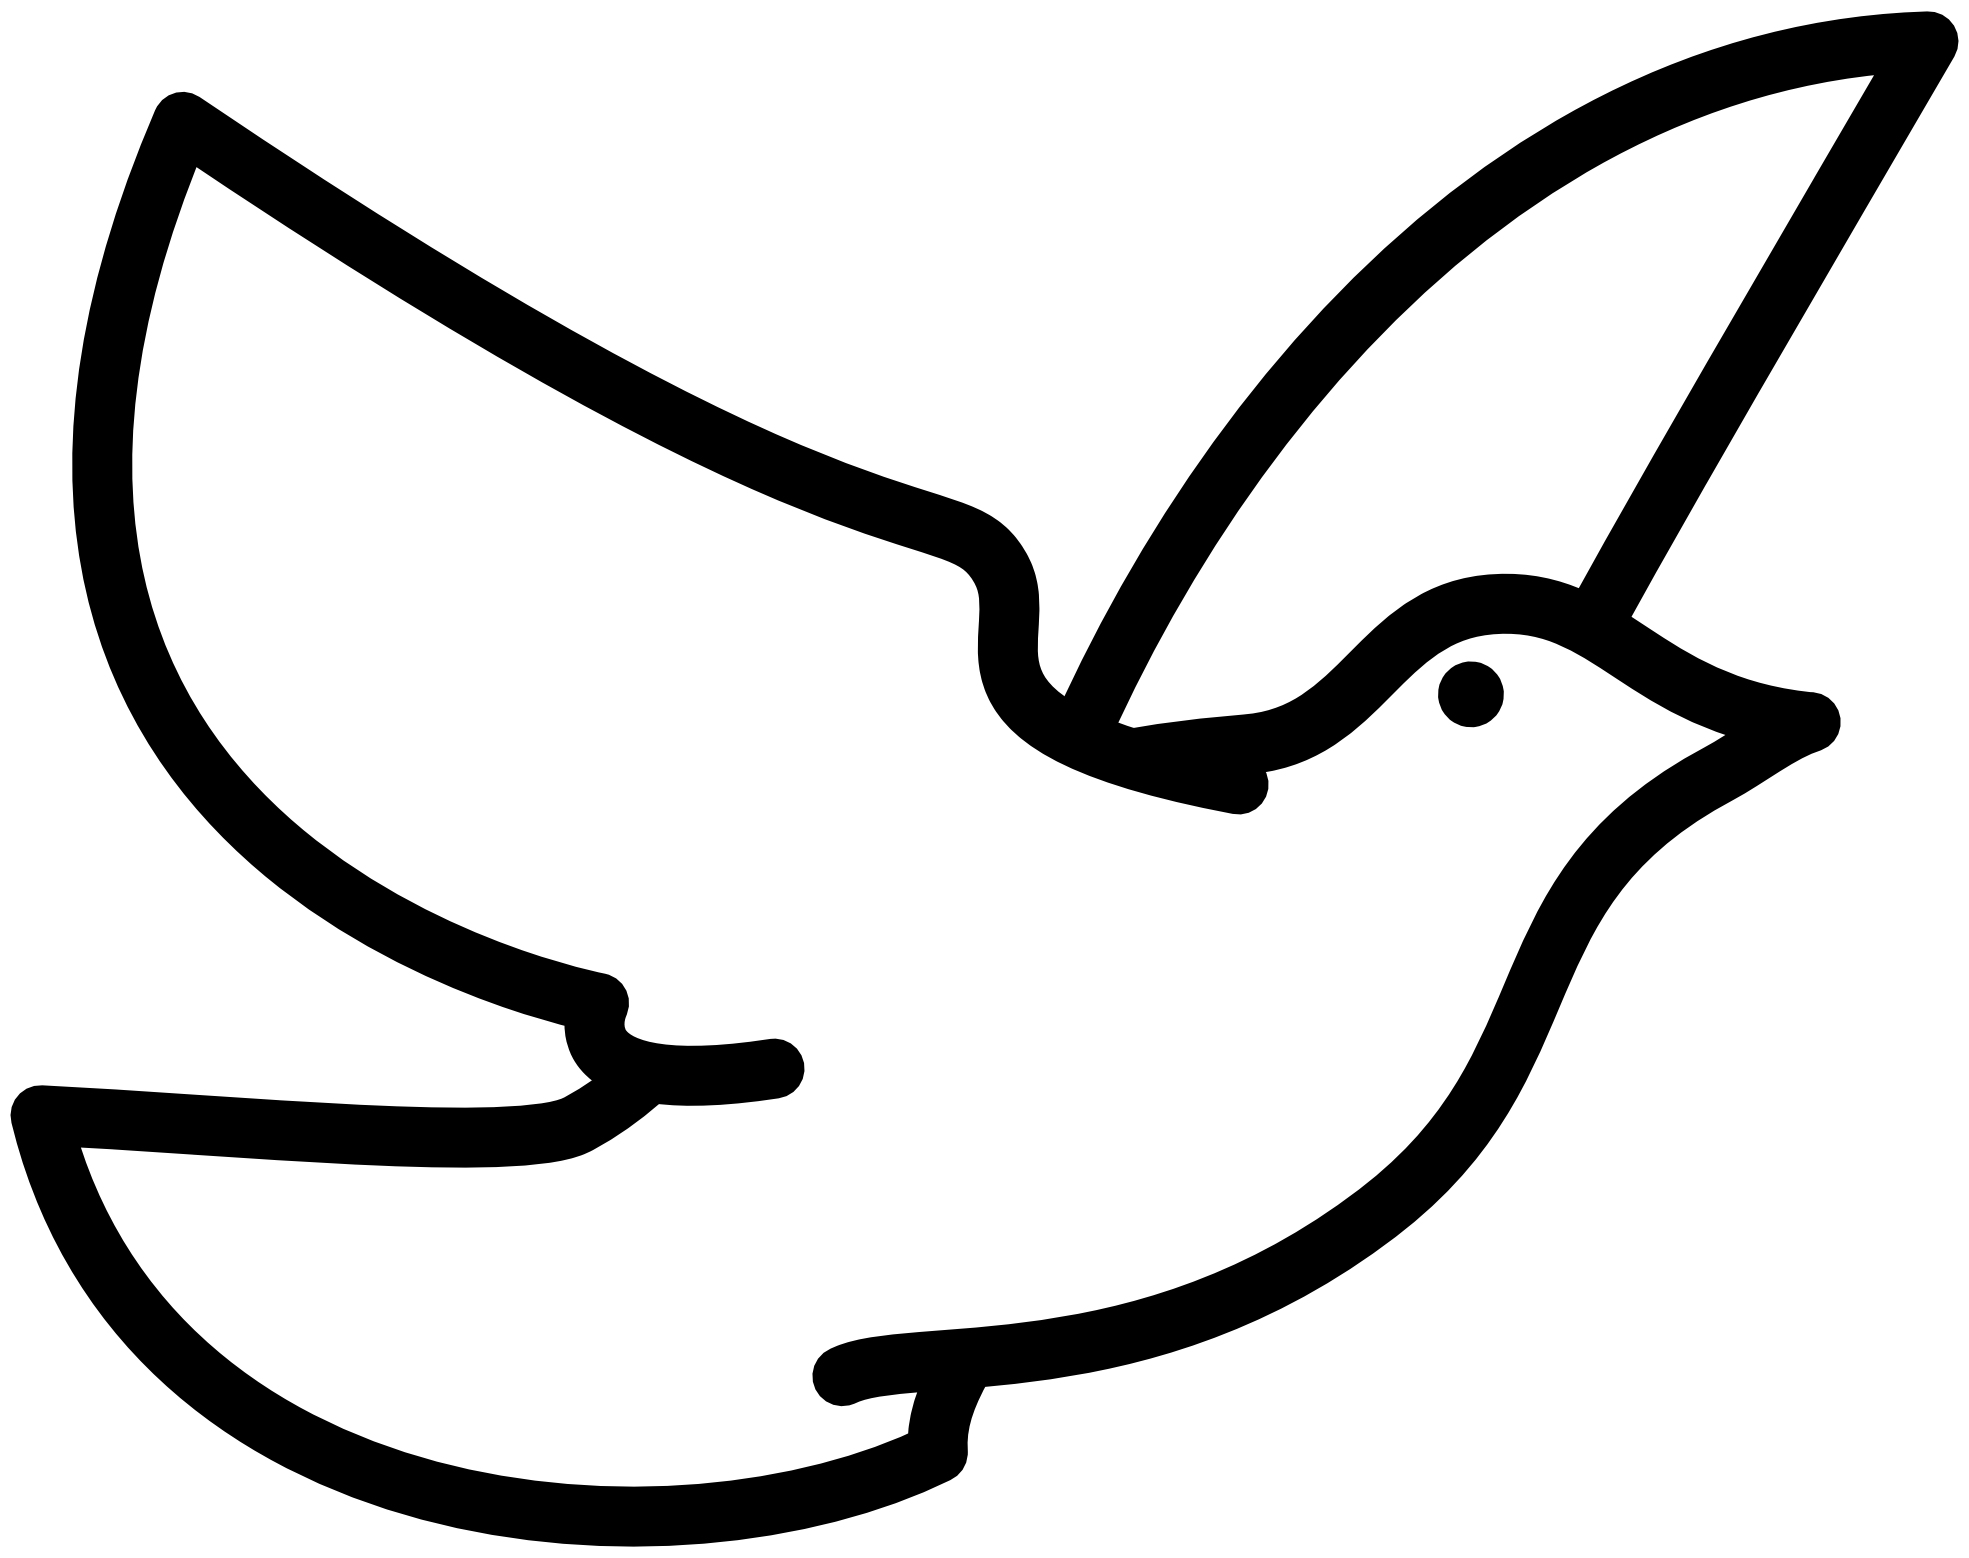 coloring bird png images for gt cute birds clipart black and white bird png coloring bird